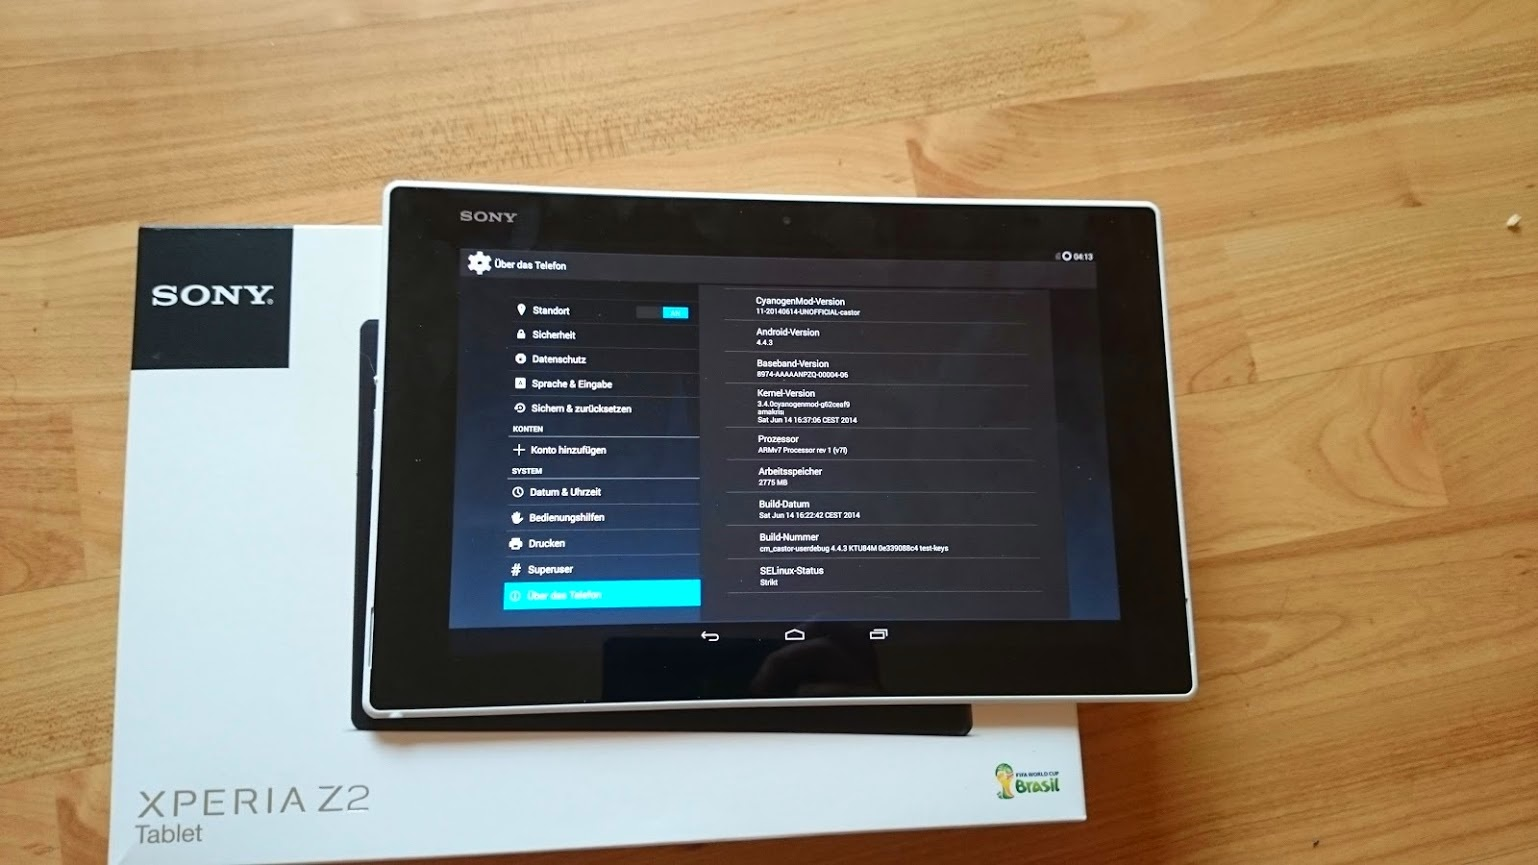 Xperia Z2 Tablet Android 4.4.3 CyanogenMod 11